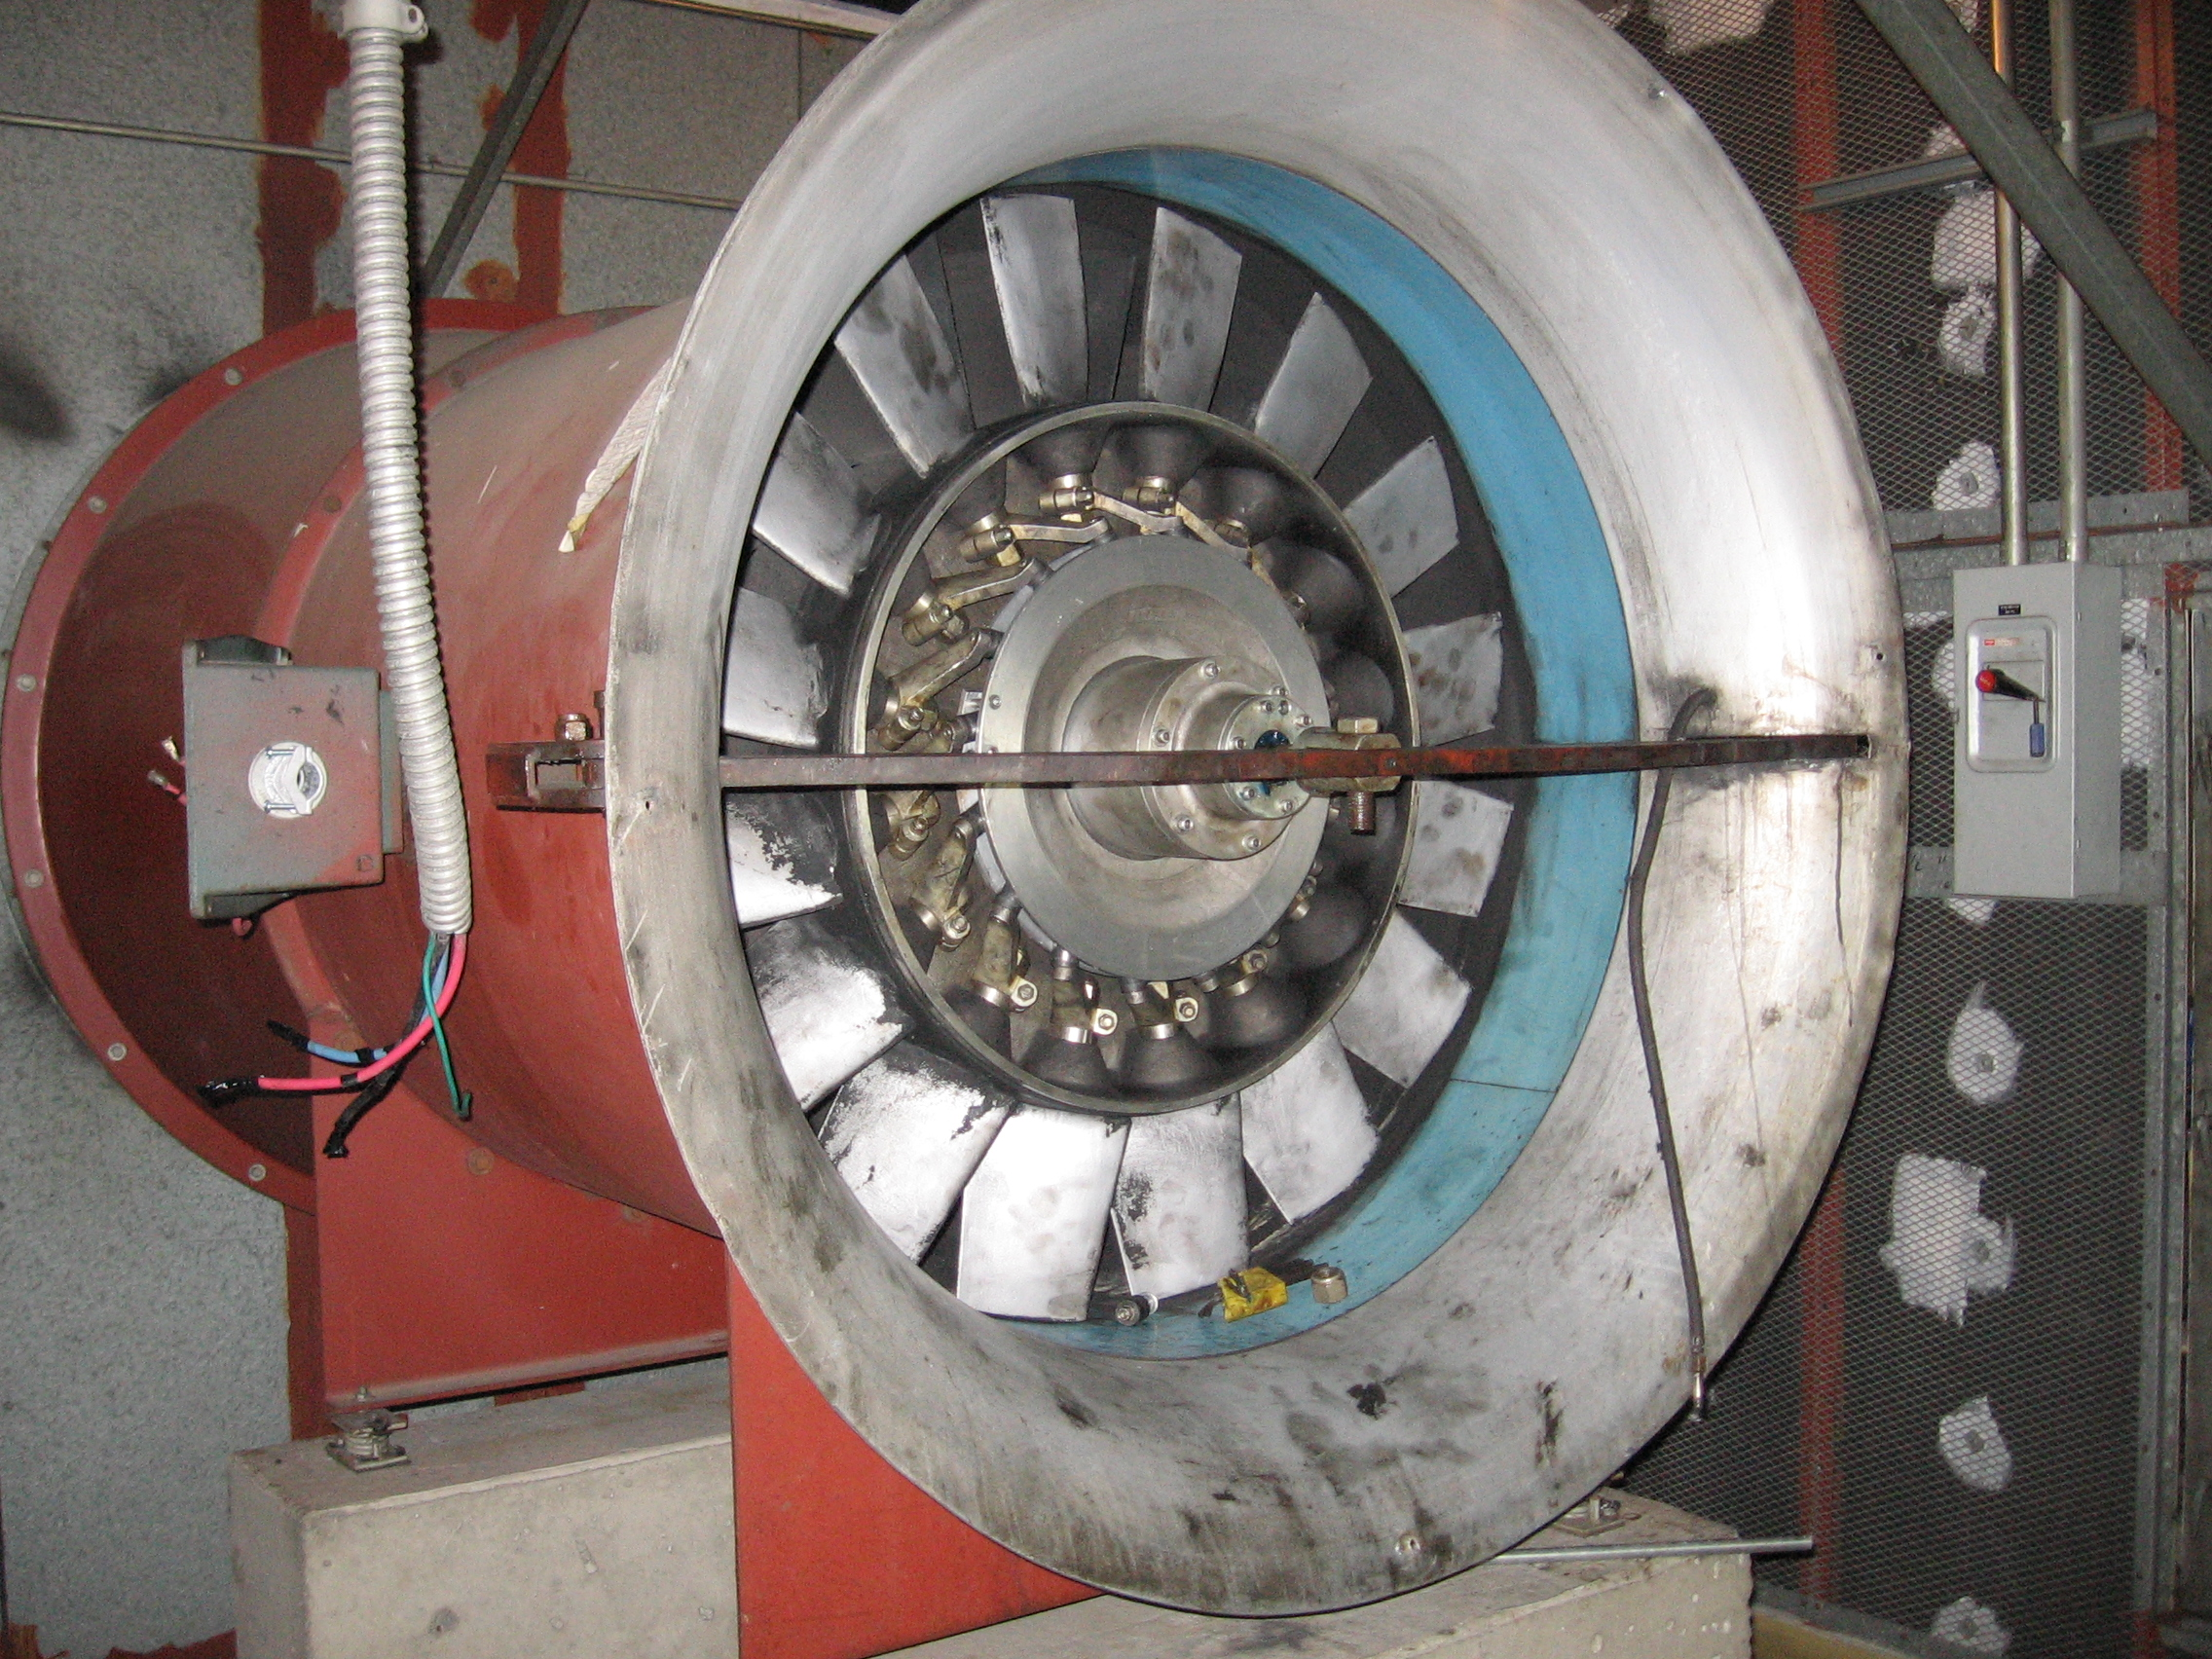 File:Joy Axial Variable Pitch Fan.JPG - Wikipedia, the free ...